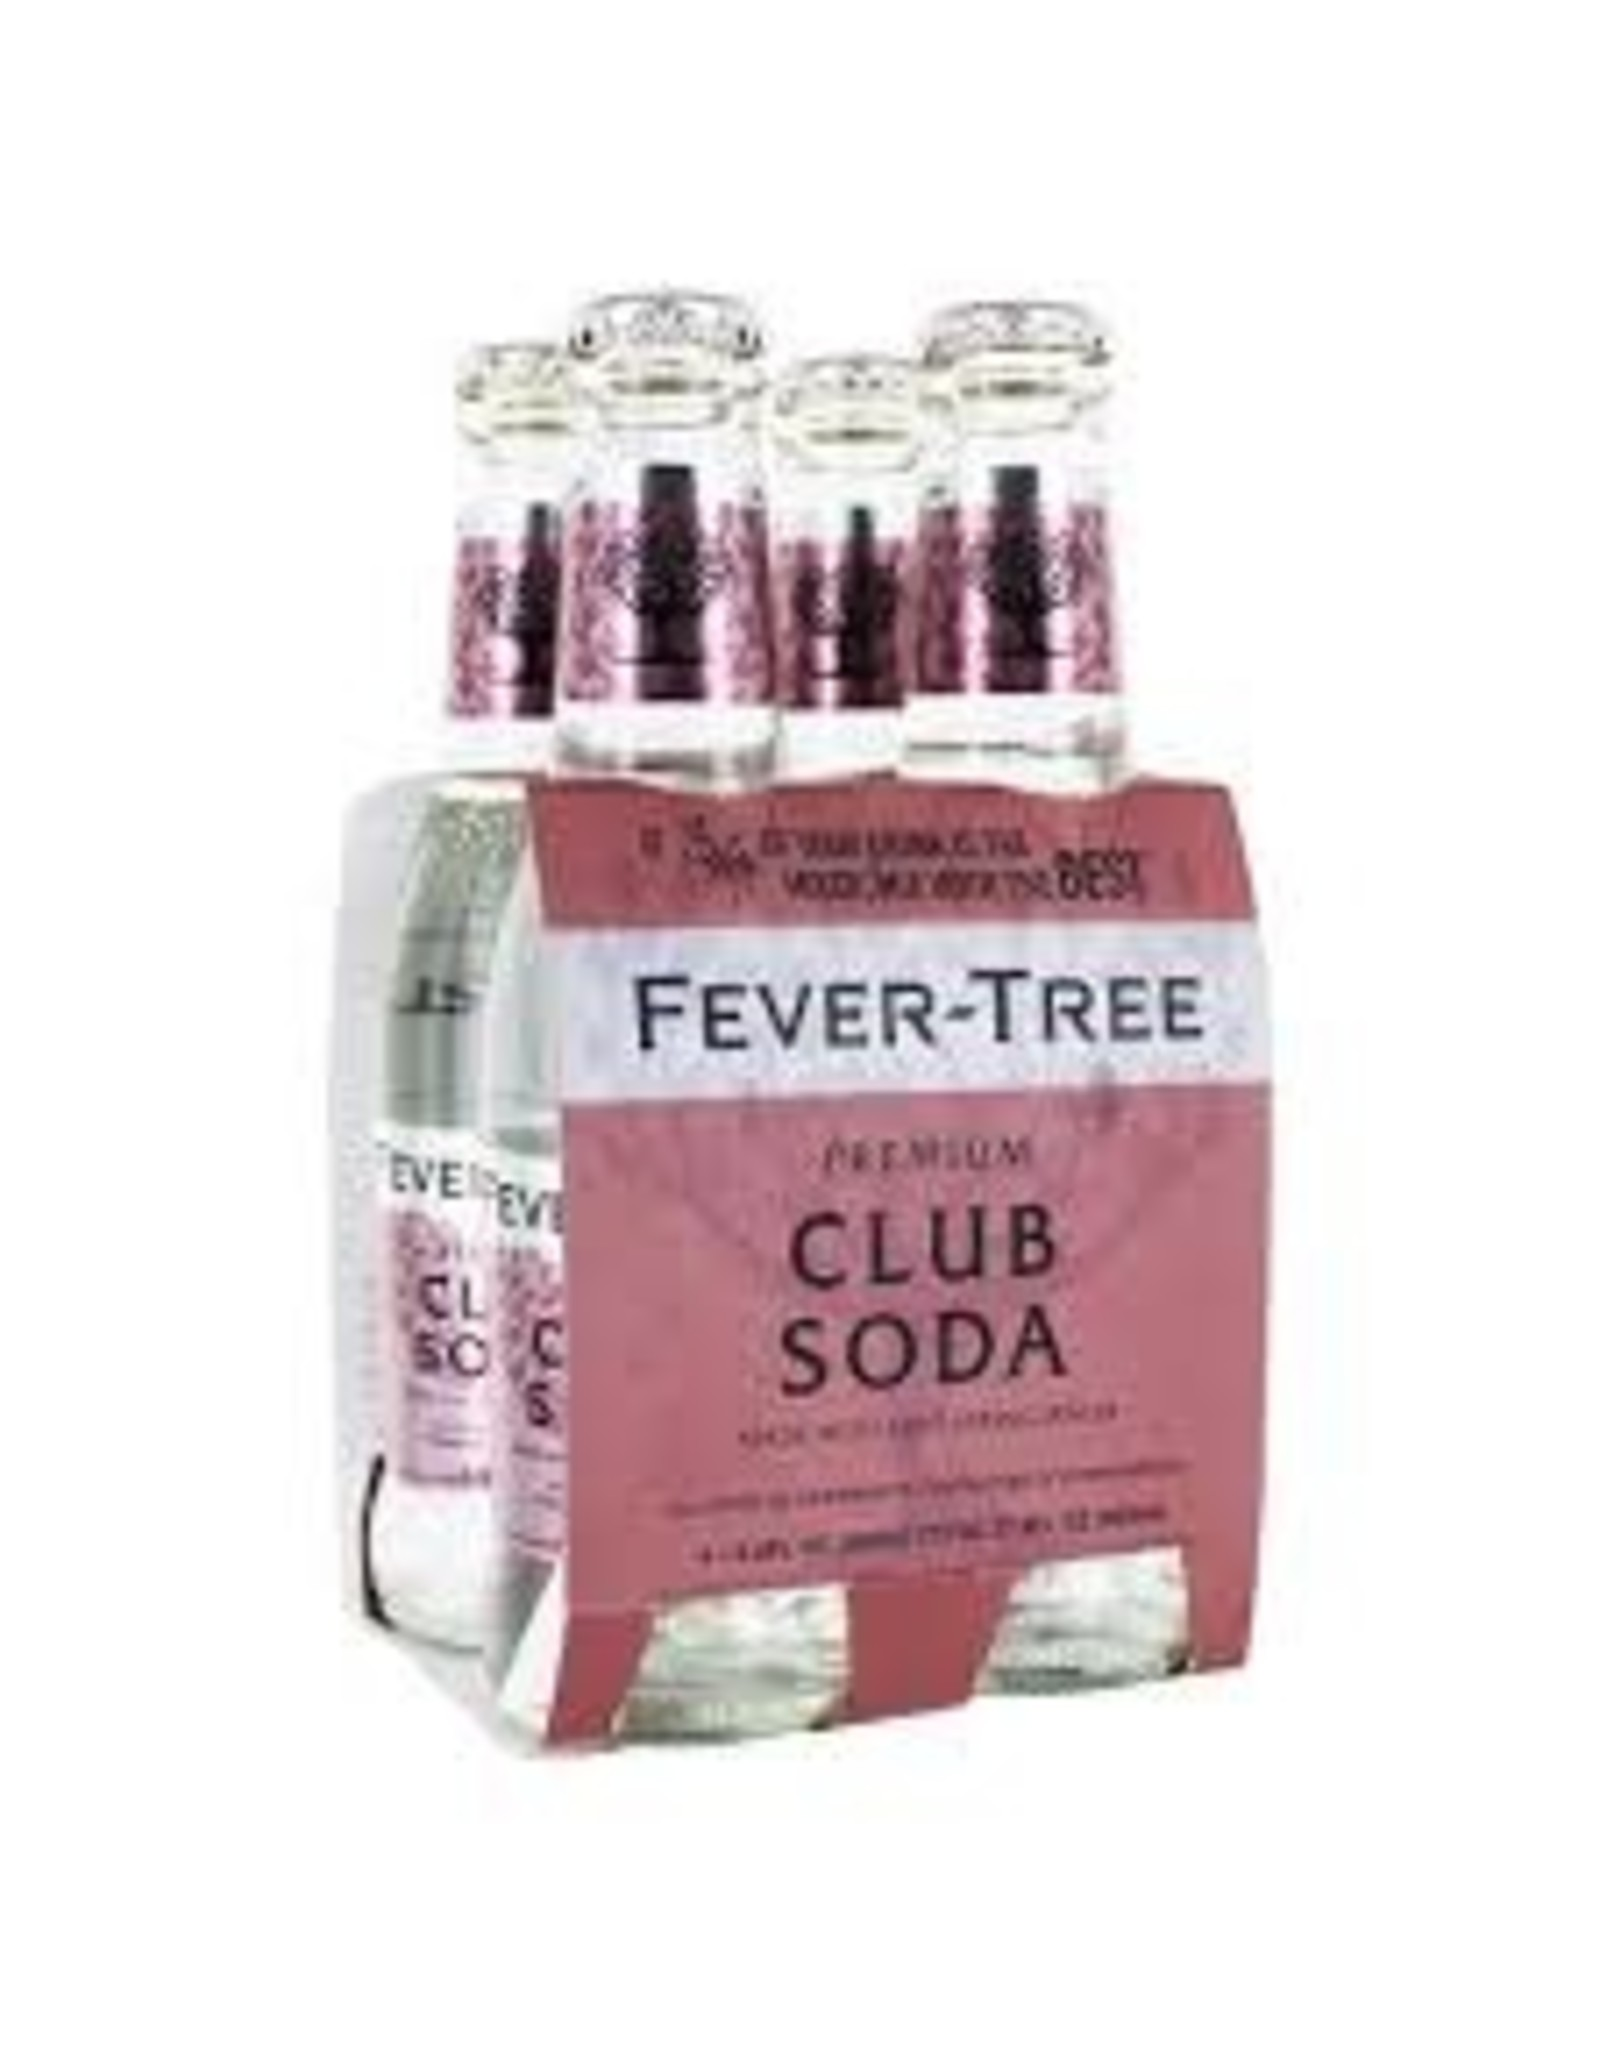 FEVER TREE PREMIUM CLUB SODA 4PK